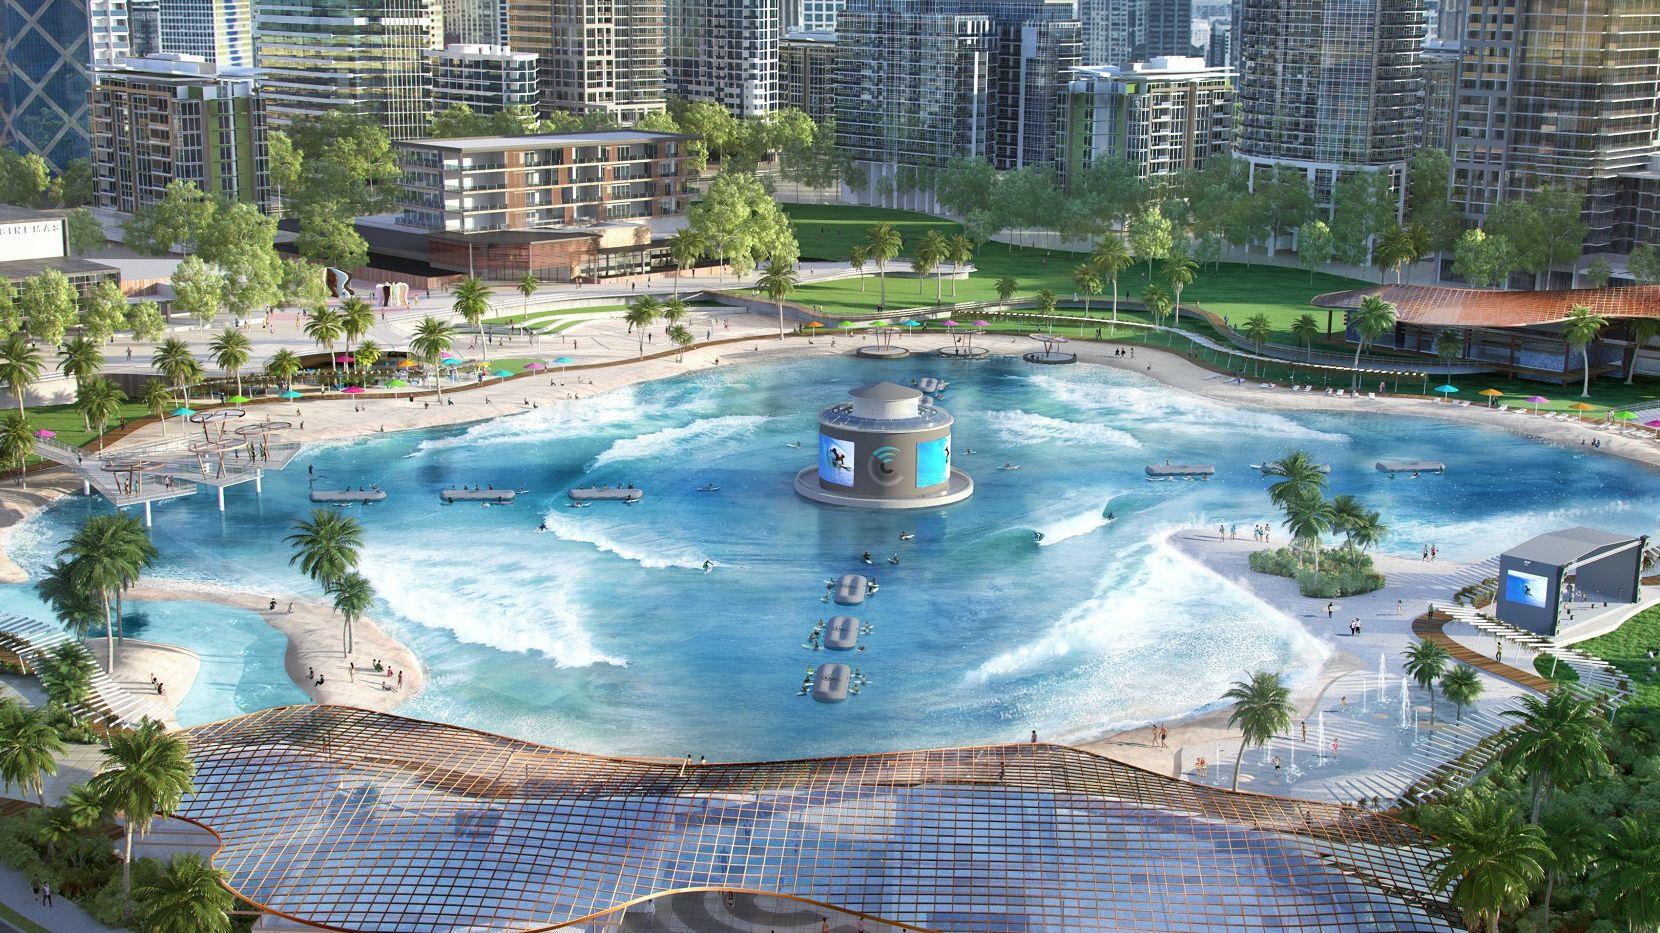 An artist's rendering of a Surf Lakes wave pool built as part of a resort.